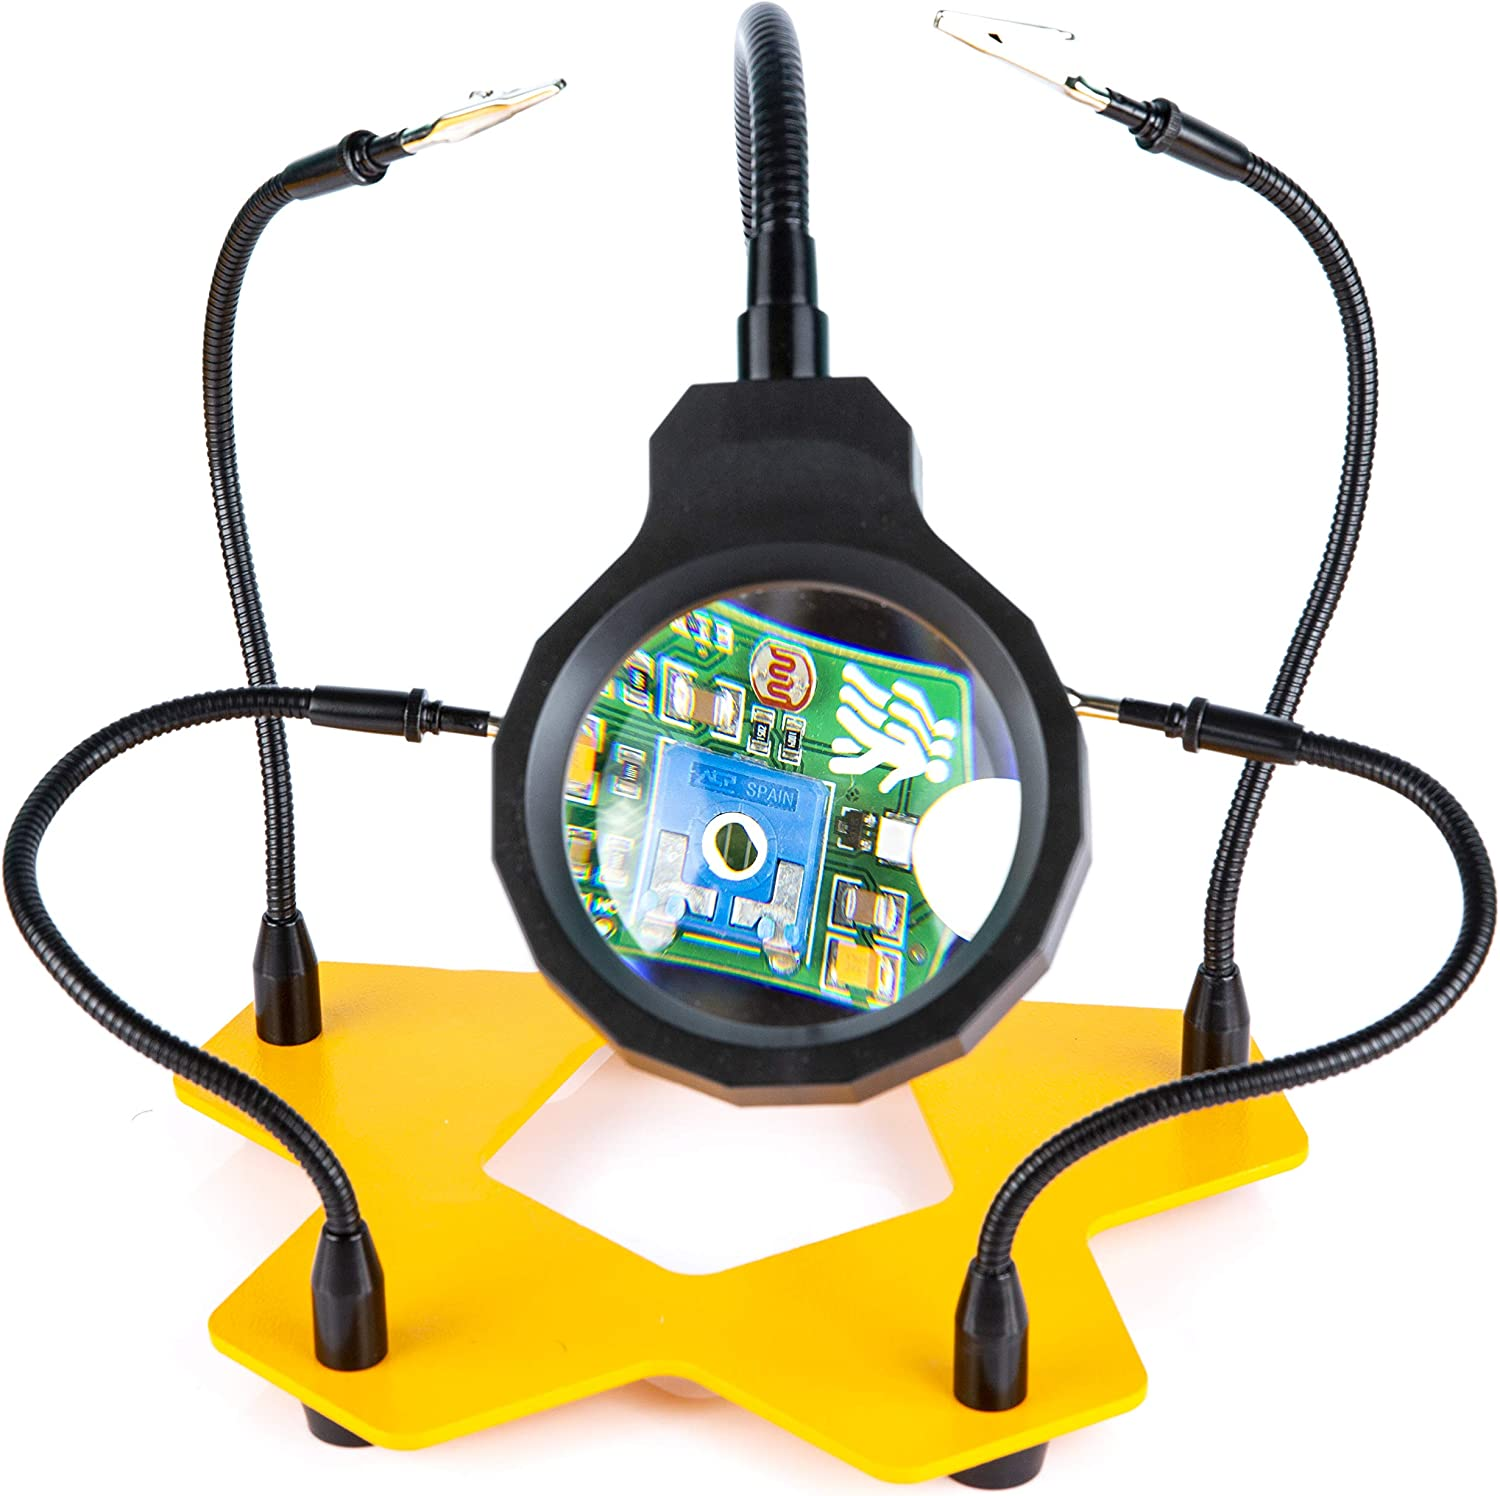 KOTTO LED Lighted Magnifying Third Hand Soldering PCB Holder Tool Five Arms Helping Hands Crafts Jewelry Hobby Workshop Helping Station Non-slip weighted base LED Lamp